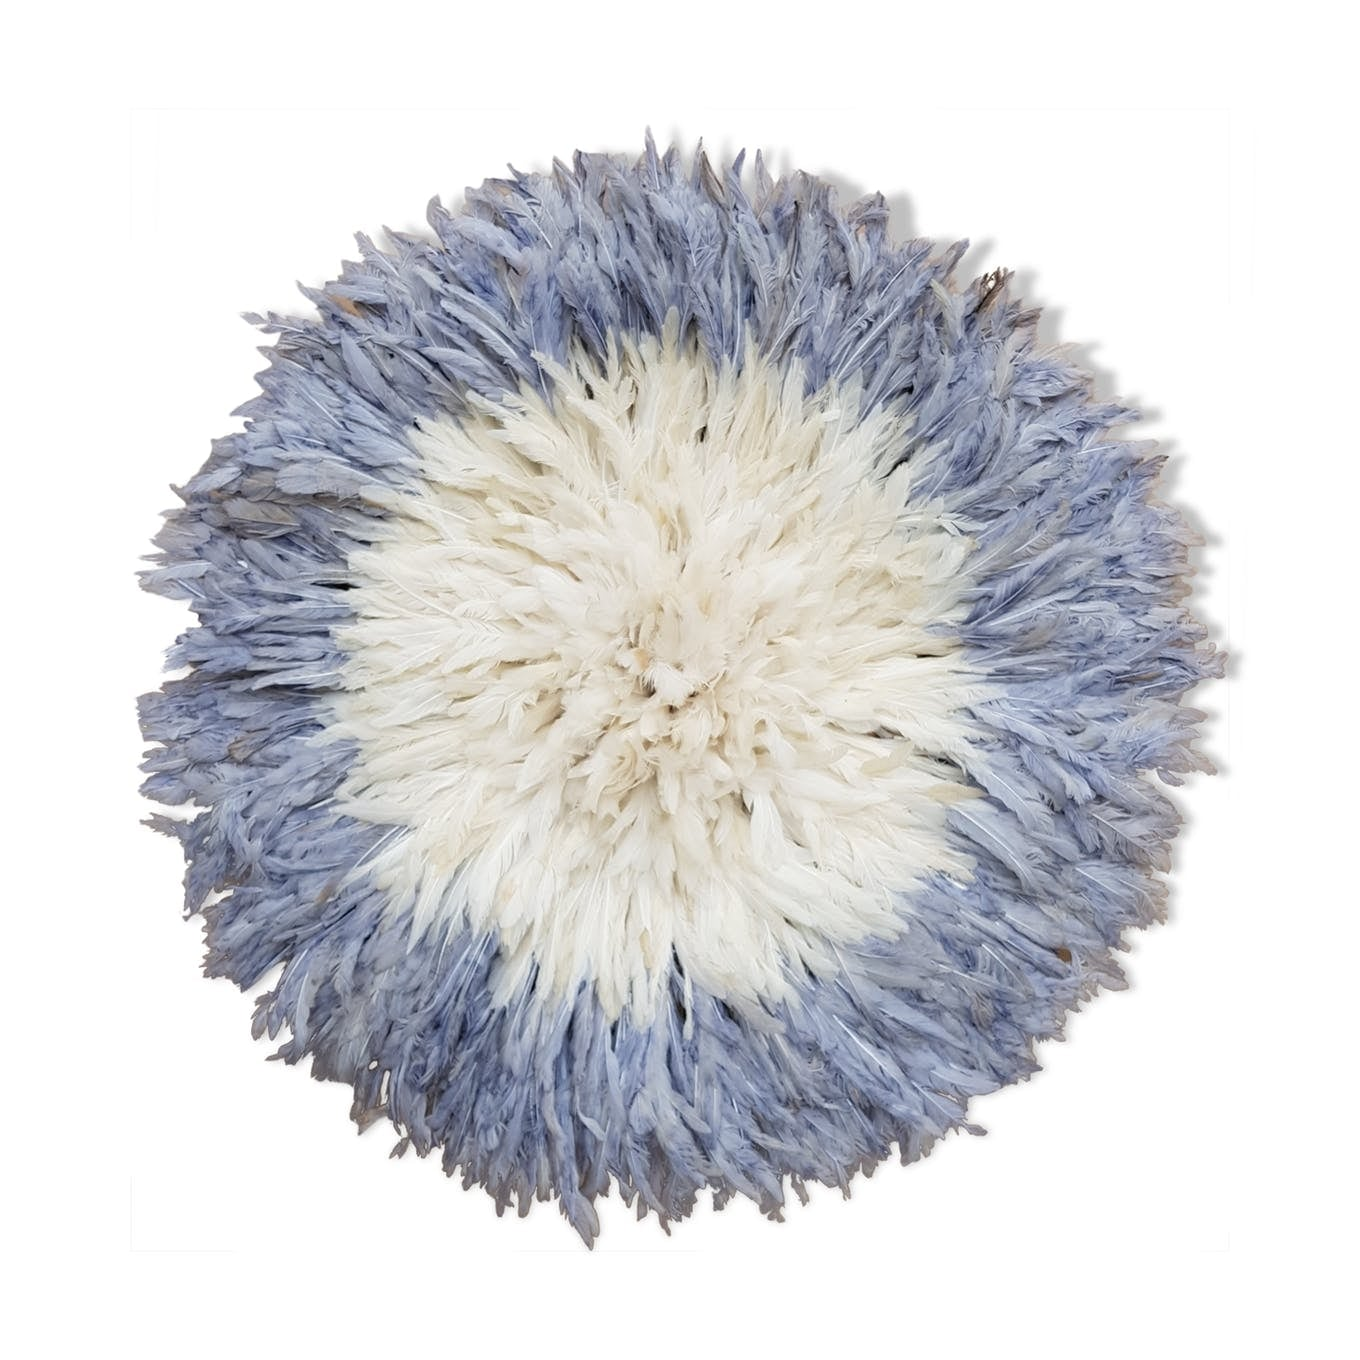 White and blue juju hat decoration for a ethnic interior